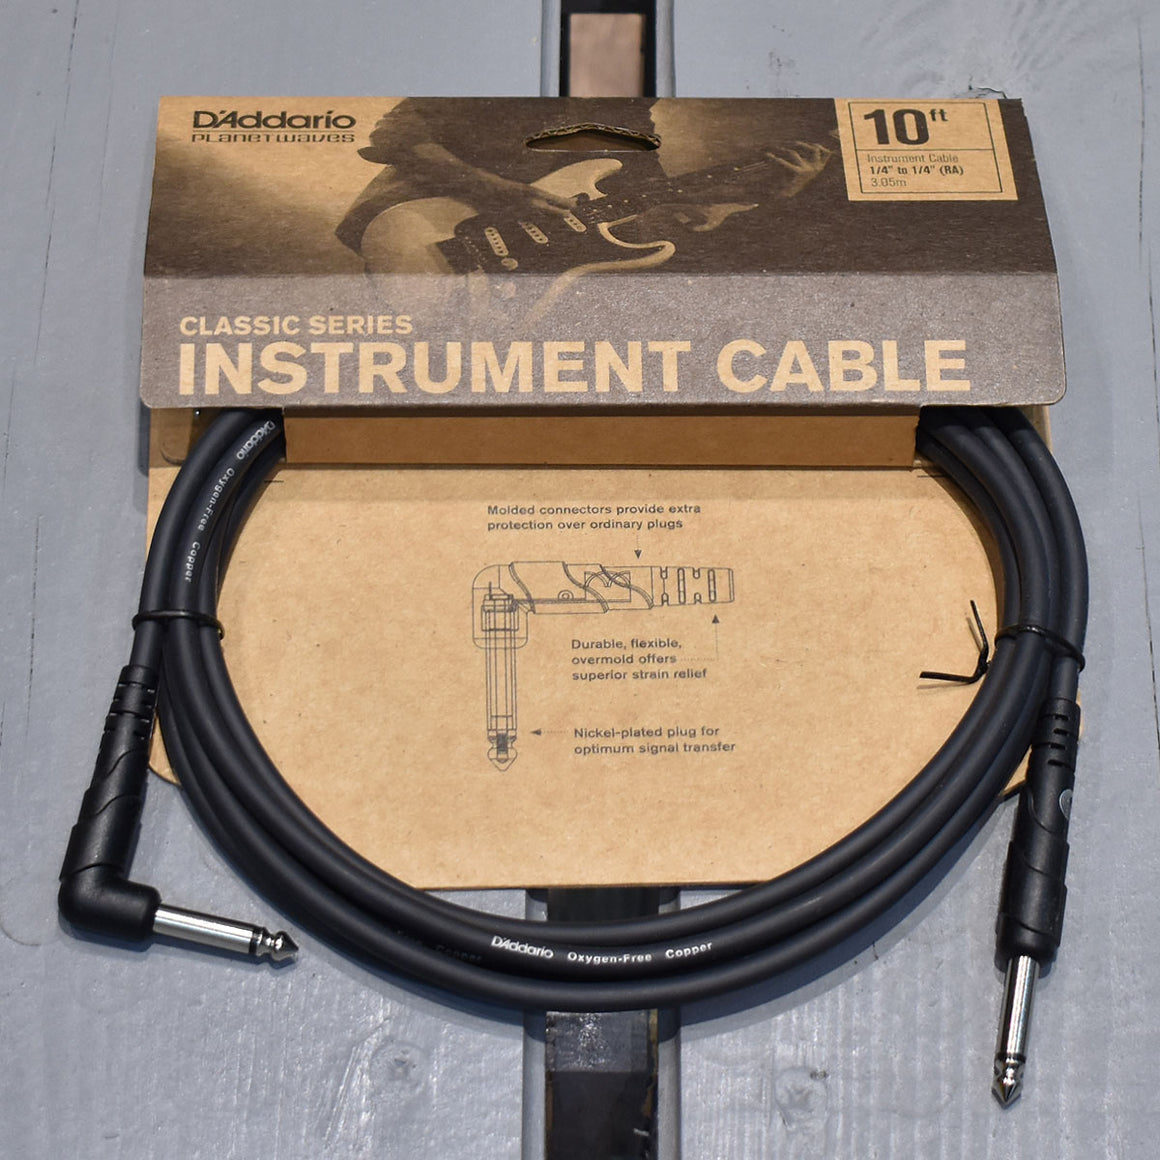 D'Addario Classic Series 10ft Angled Instrument Cable